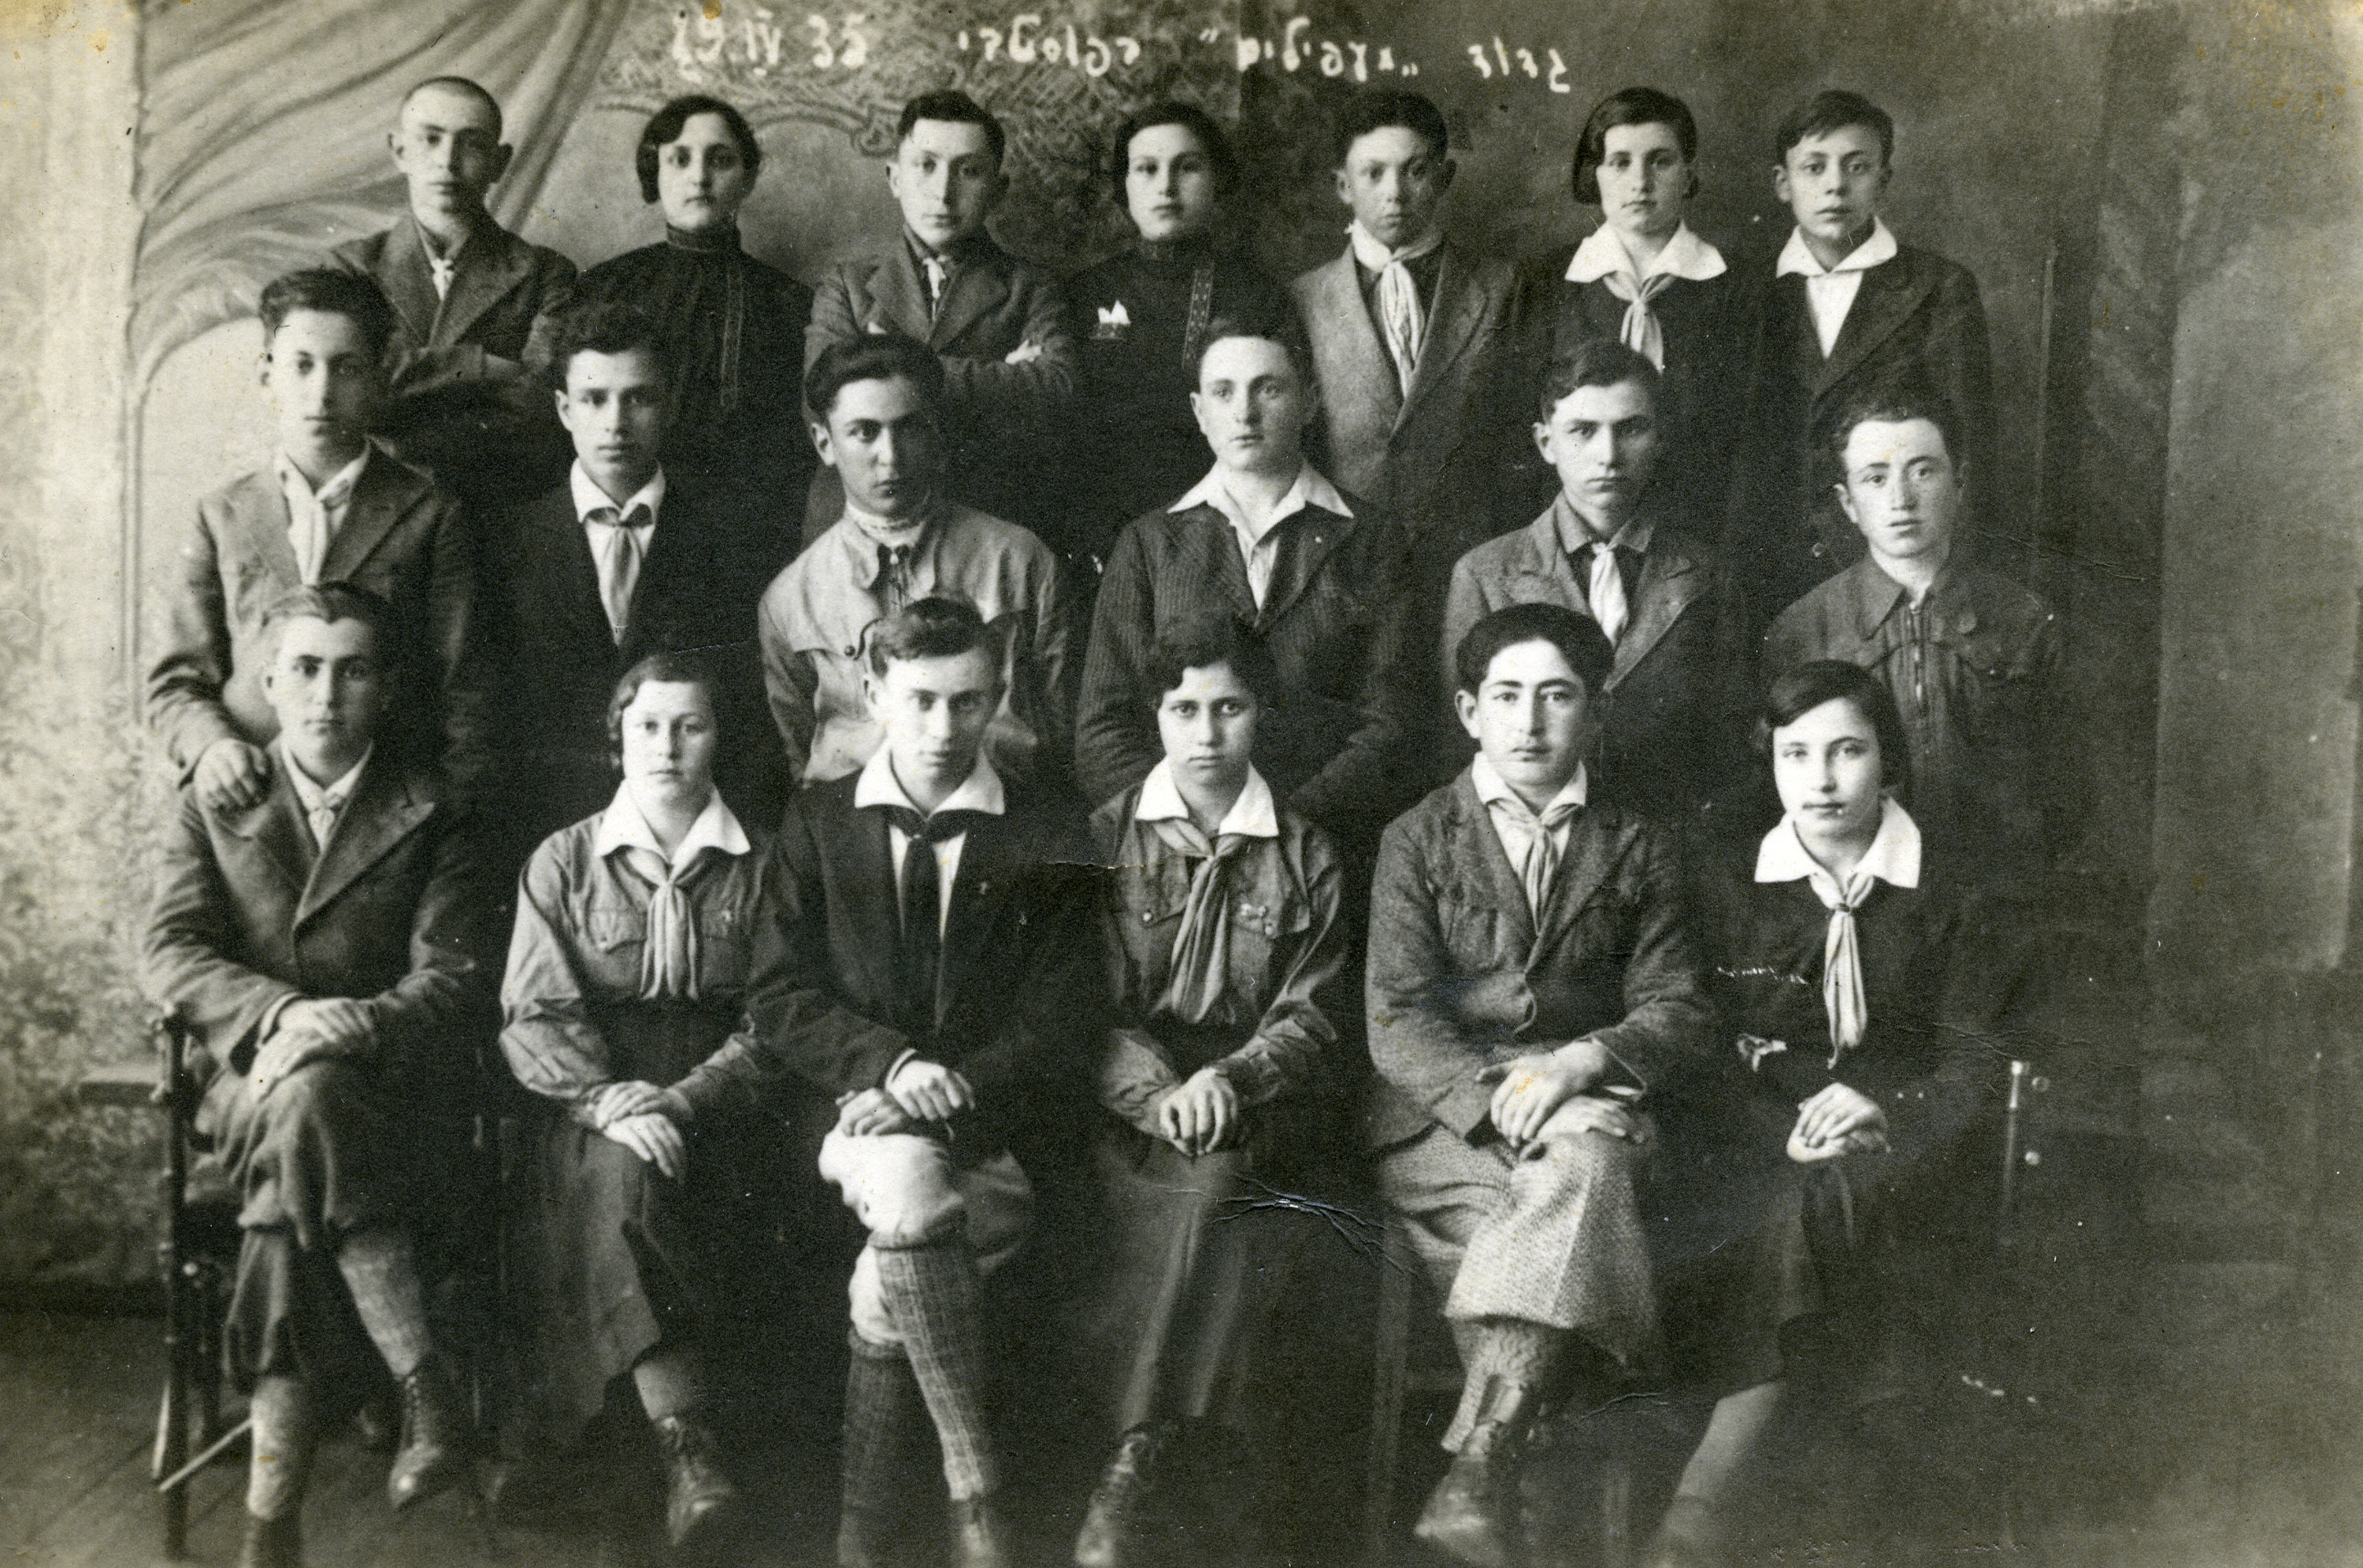 Group photograph of members of the Gdud Maapilim Youth Movement in Postawy.  Among those pictured is Zvia Rochman (later Golomb) in the front row, third from the right.